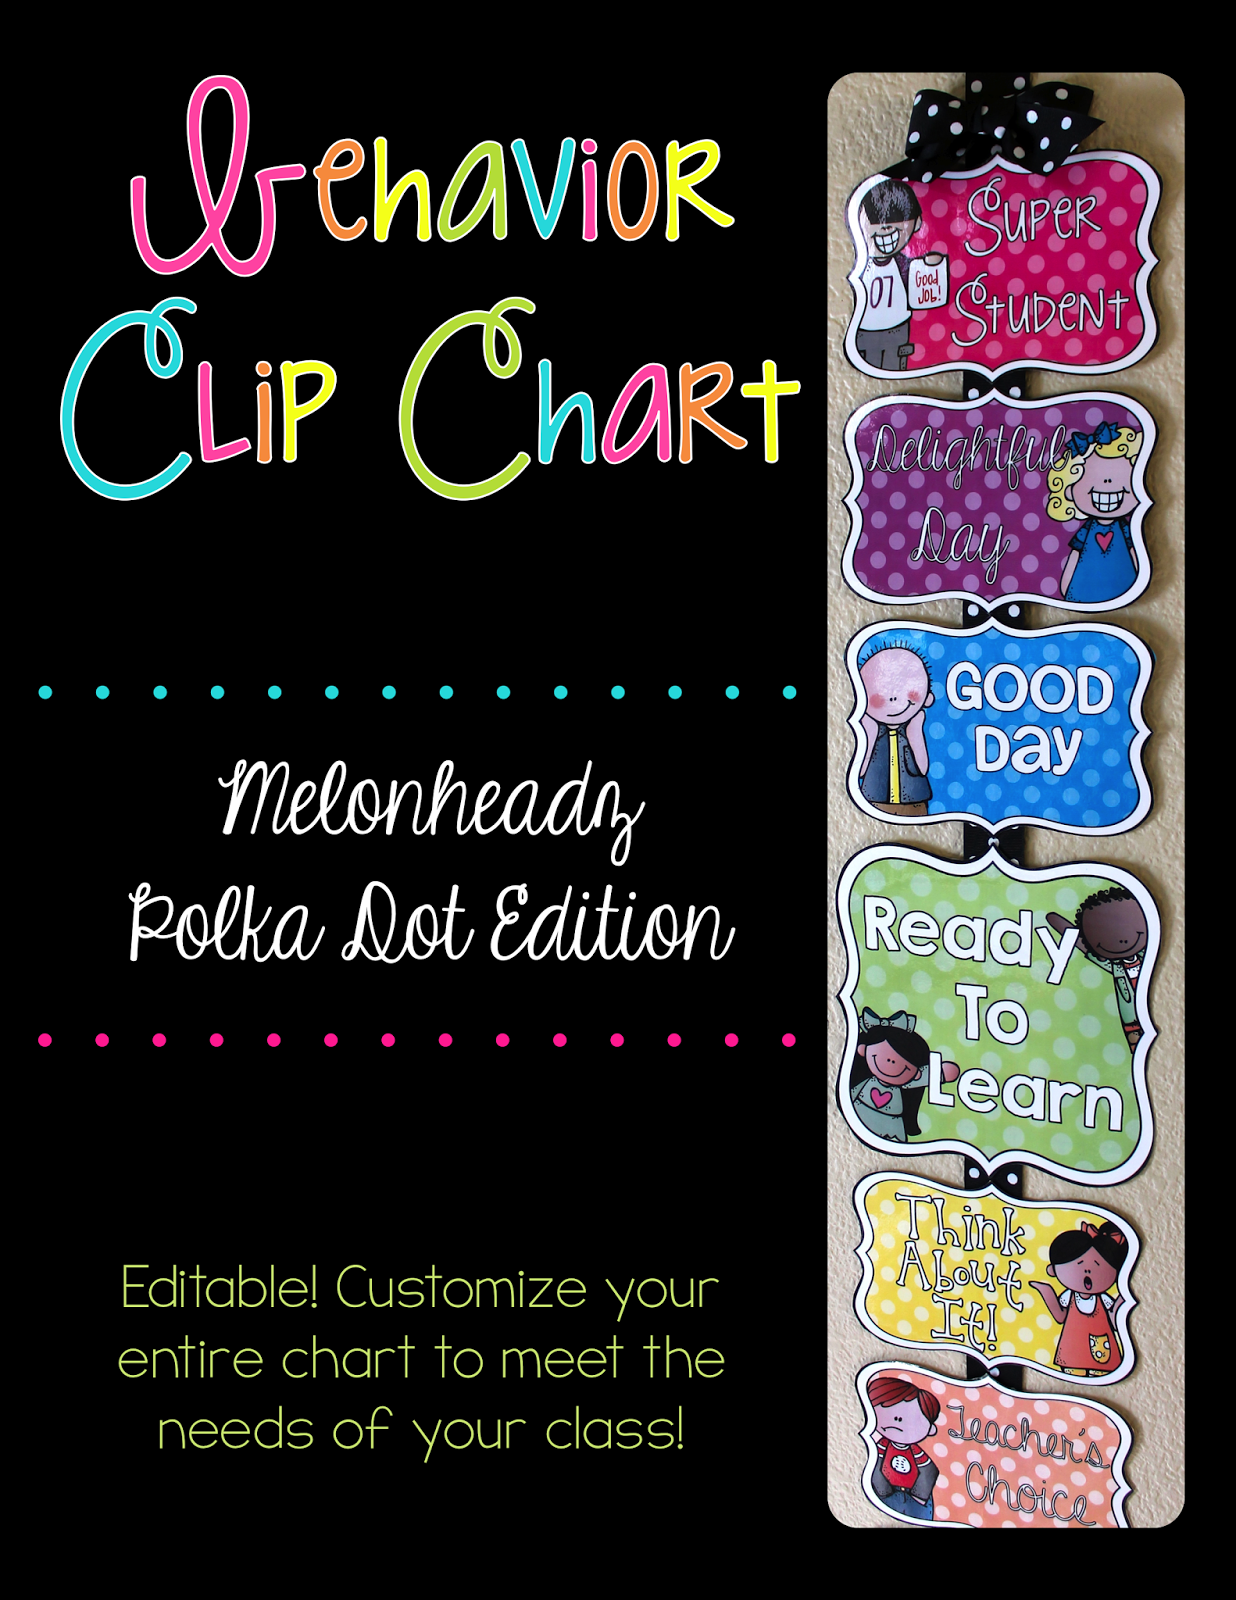 http://www.teacherspayteachers.com/Product/Editable-Behavior-Chart-Melonheadz-Polka-Dot-Edition-1336804